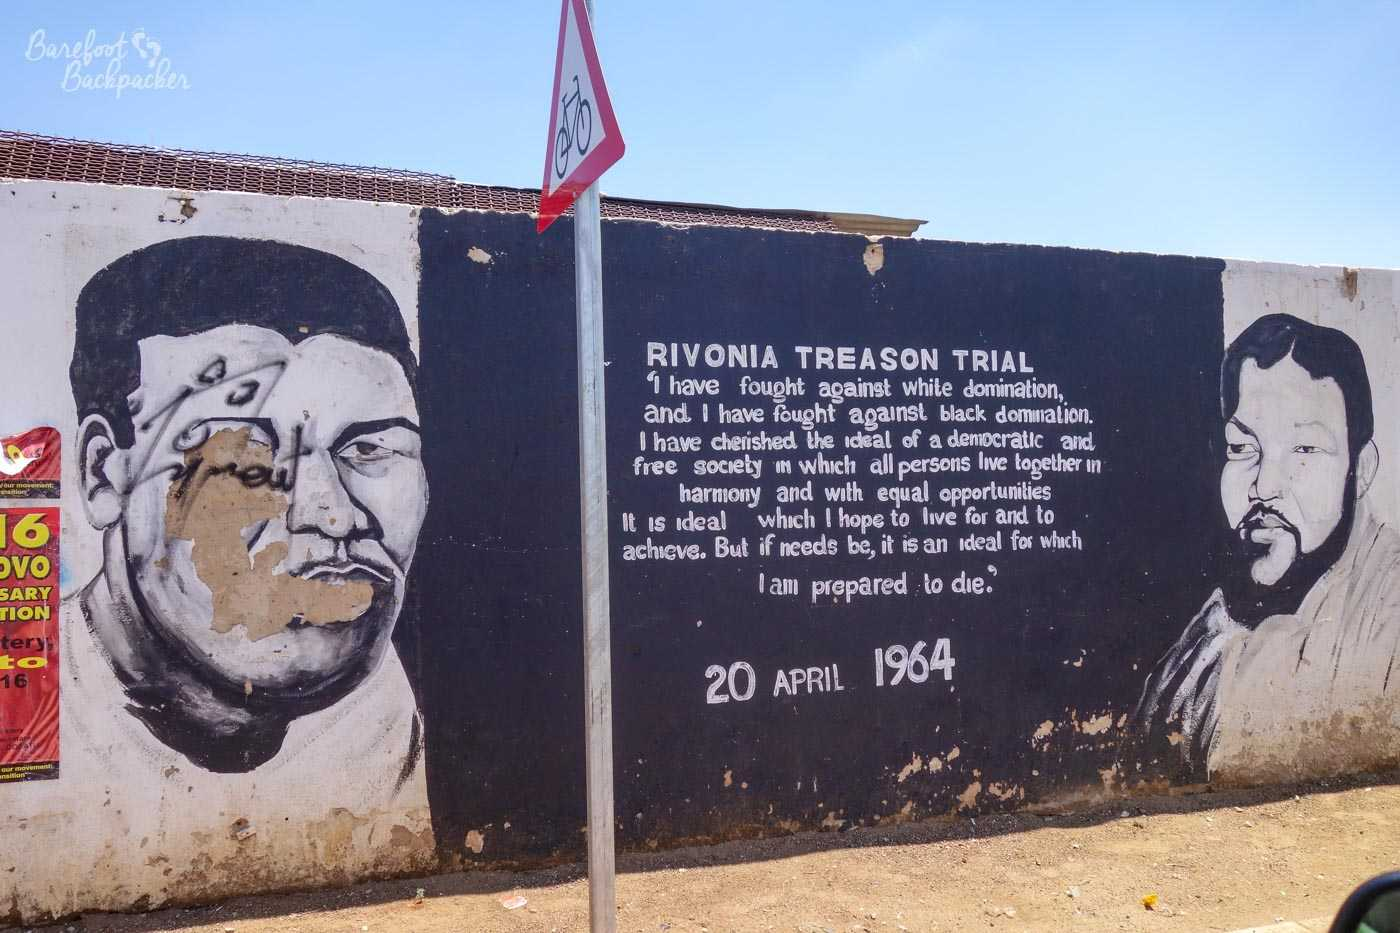 Extract from a speech by Nelson Mandela at his trial, prior to imprisonment in 1964, which in summary says 'I am prepared to die for the cause of an equal and free South Africa'. It's painted on a wall in Soweto.